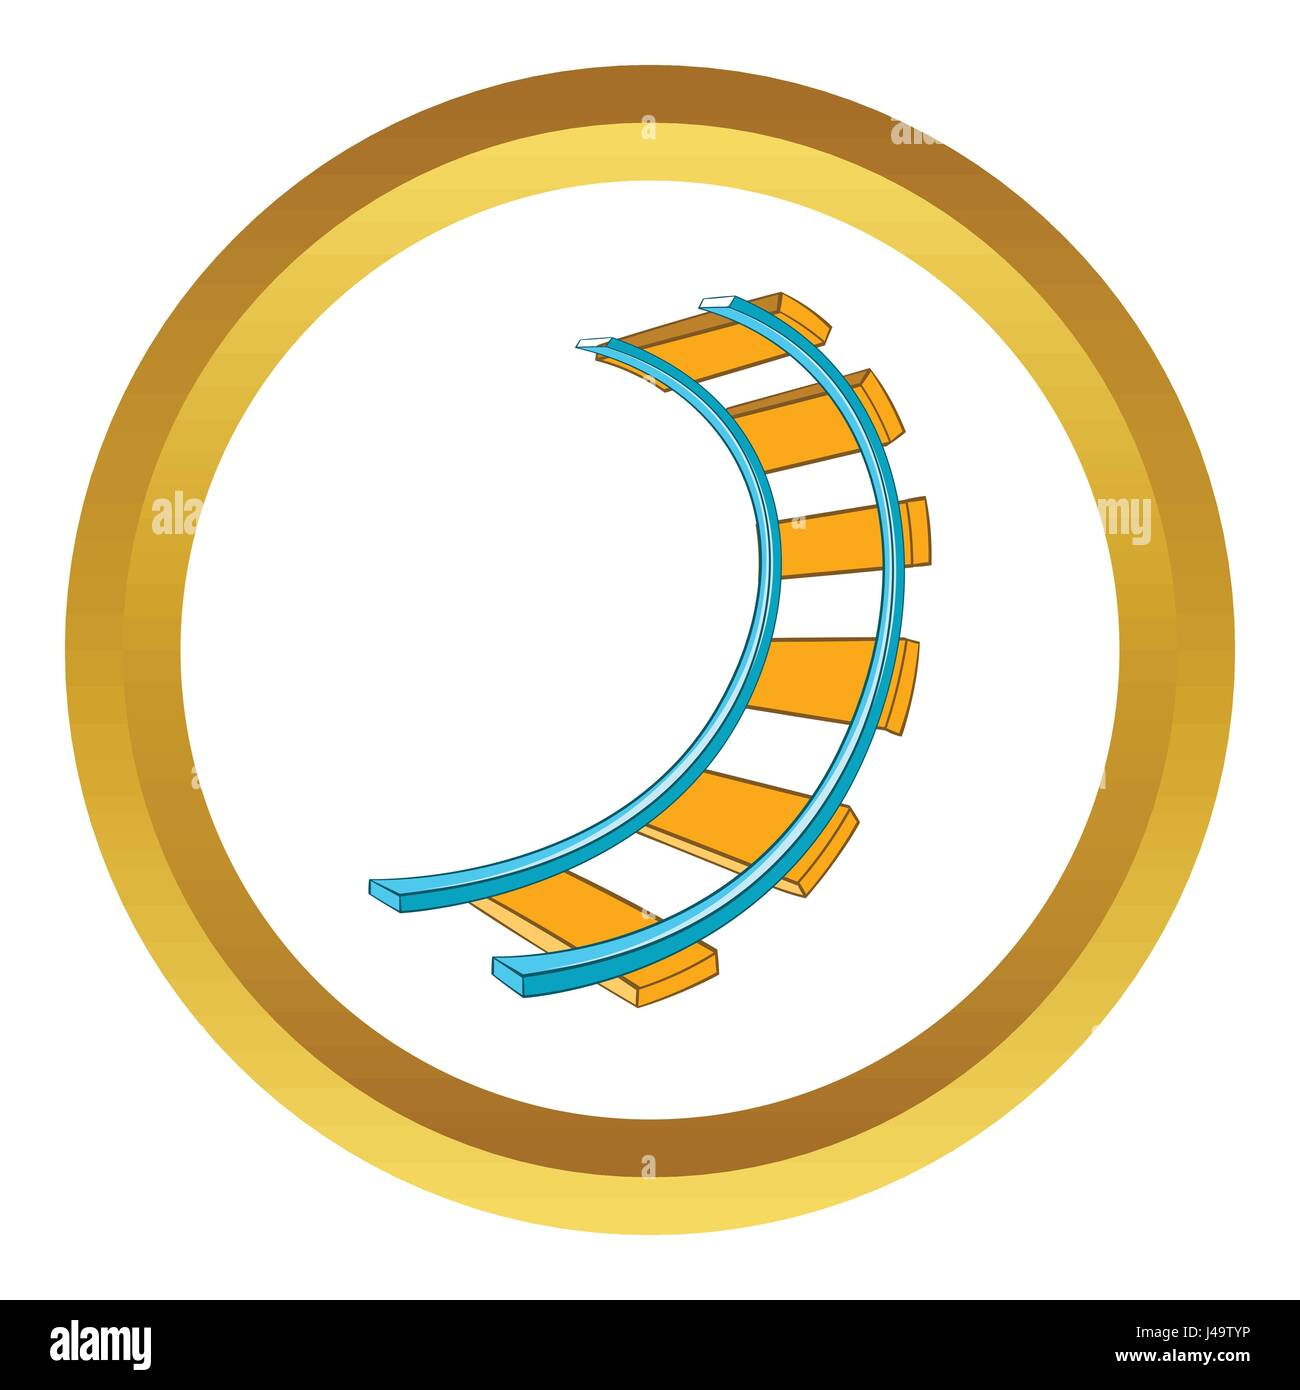 Roller coaster track vector icon - Stock Vector